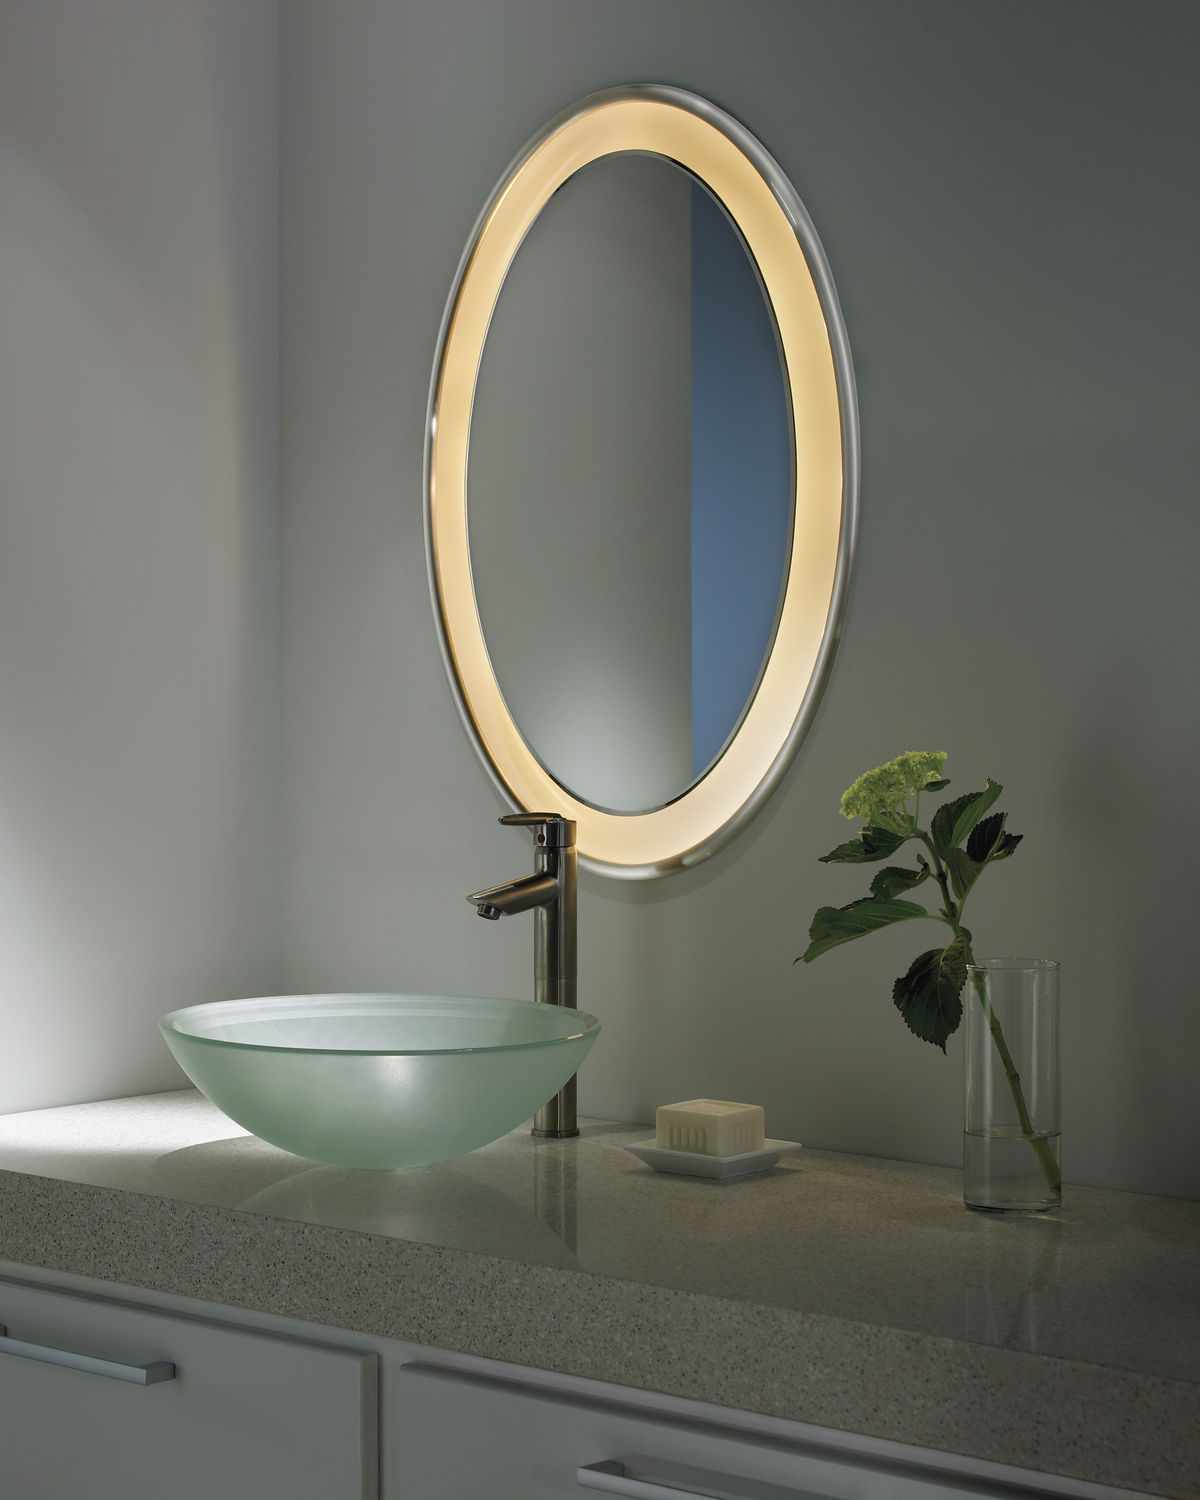 Wall Mounted Mirror Contemporary Oval Illuminated